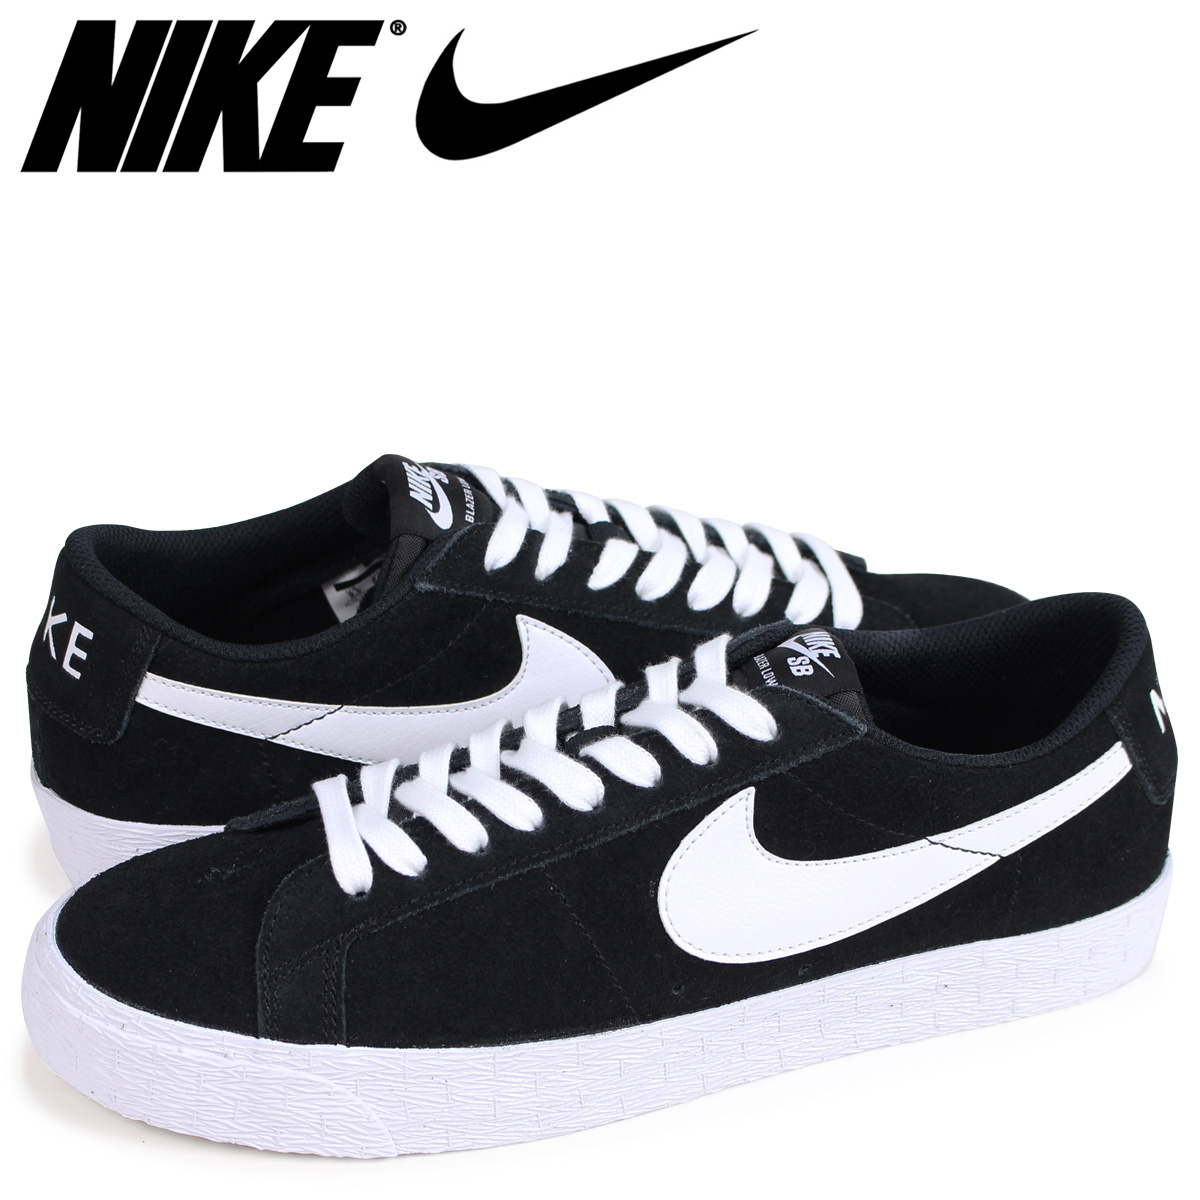 buy online a642b 48d3f NIKE SB BLAZER ZOOM LOW Nike blazer low sneakers men black 864,347-019